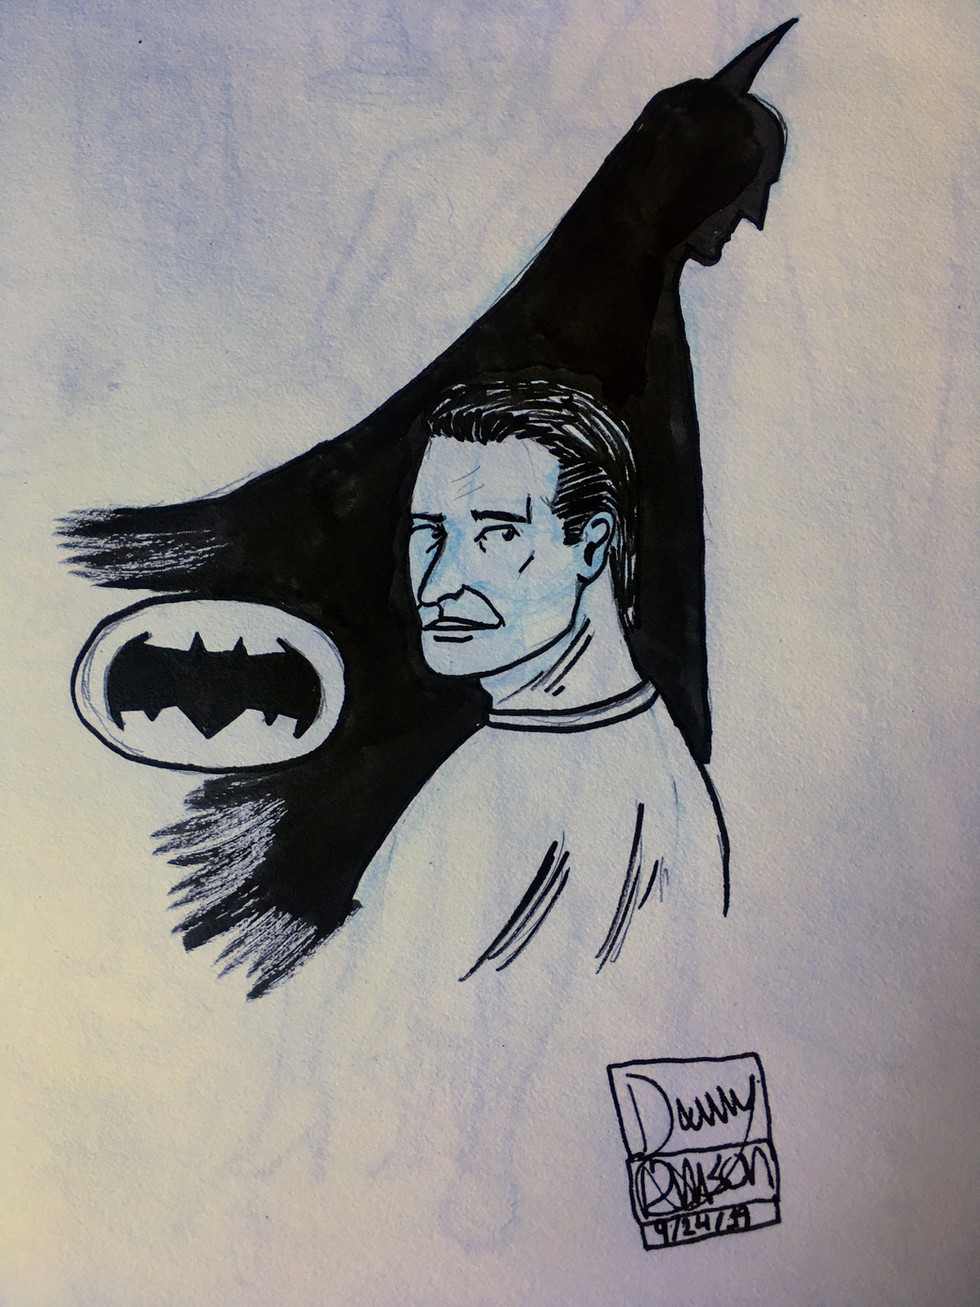 A Tribute to Norm Breyfogle